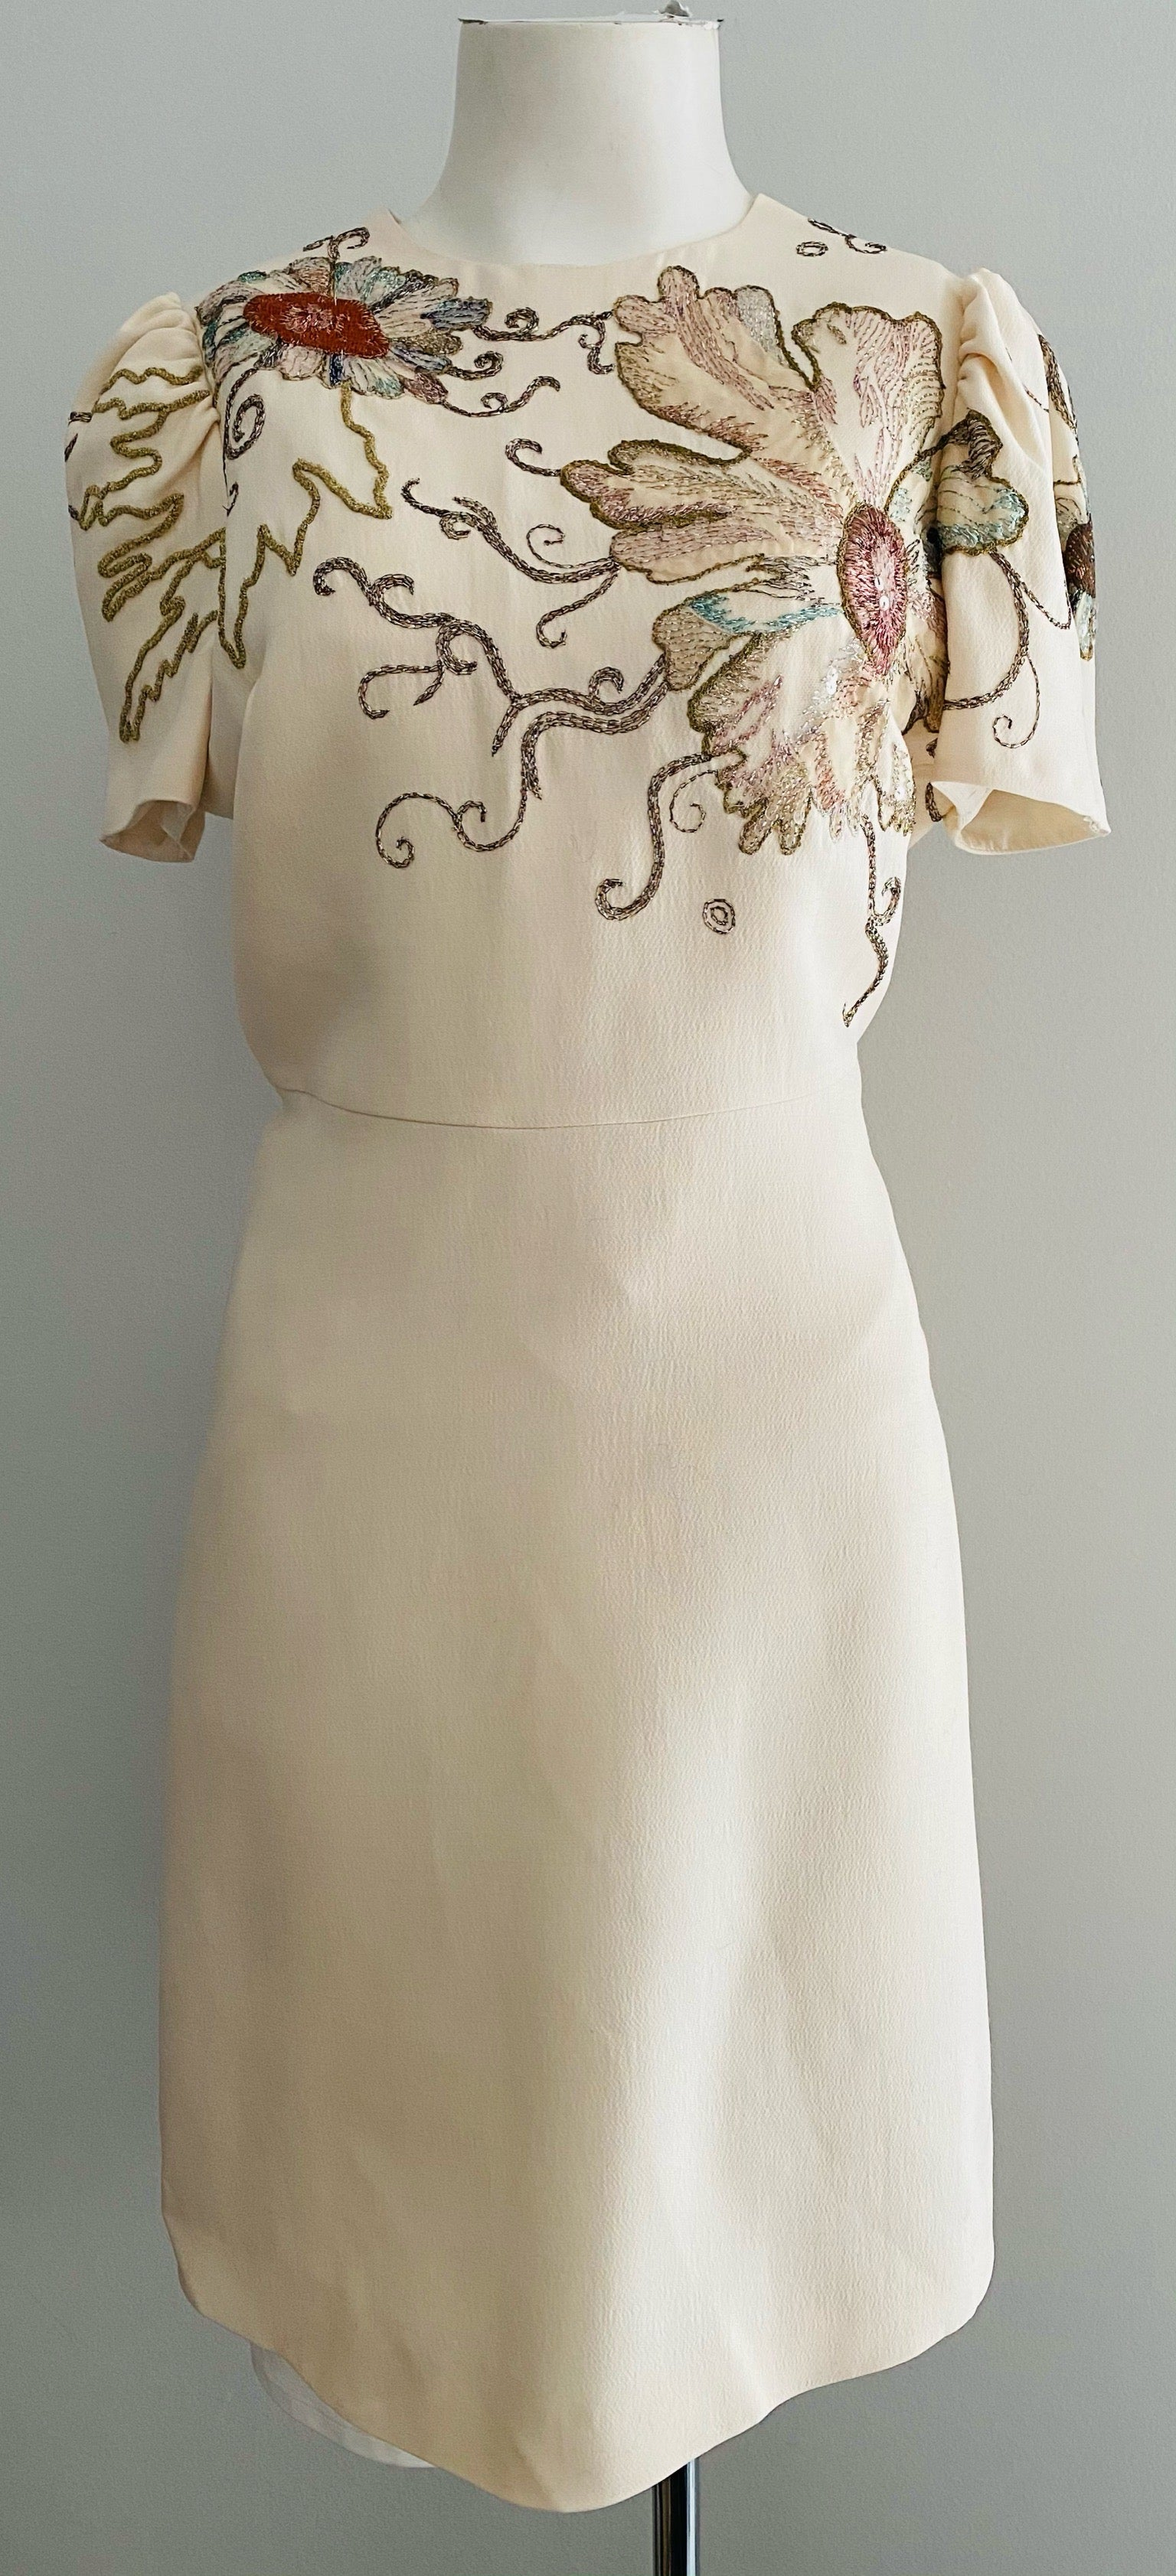 Valentino Ivory Floral Embellished Short Sleeve Sheath Dress Size 8/10